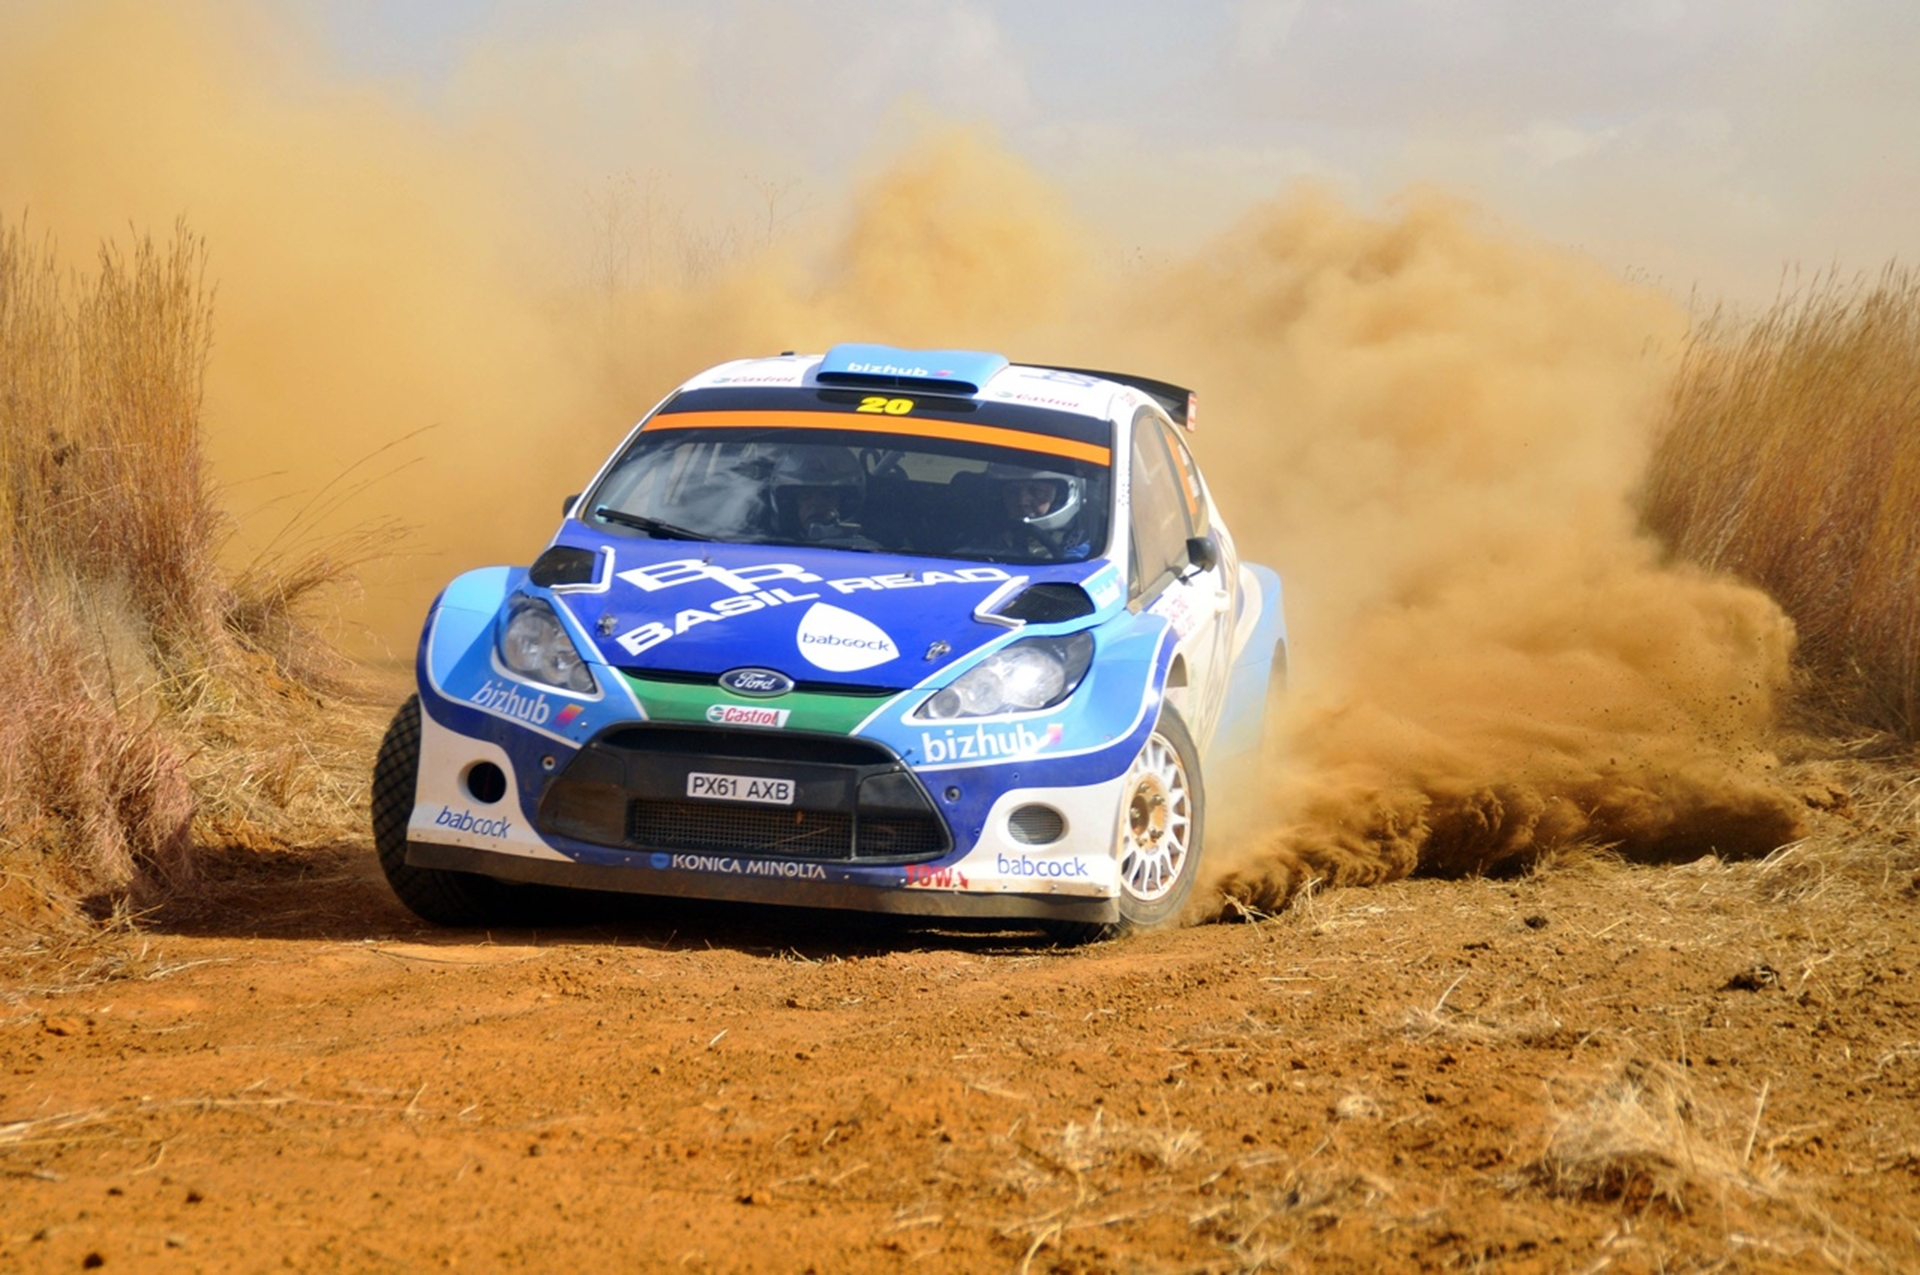 Ford Fiesta Racing